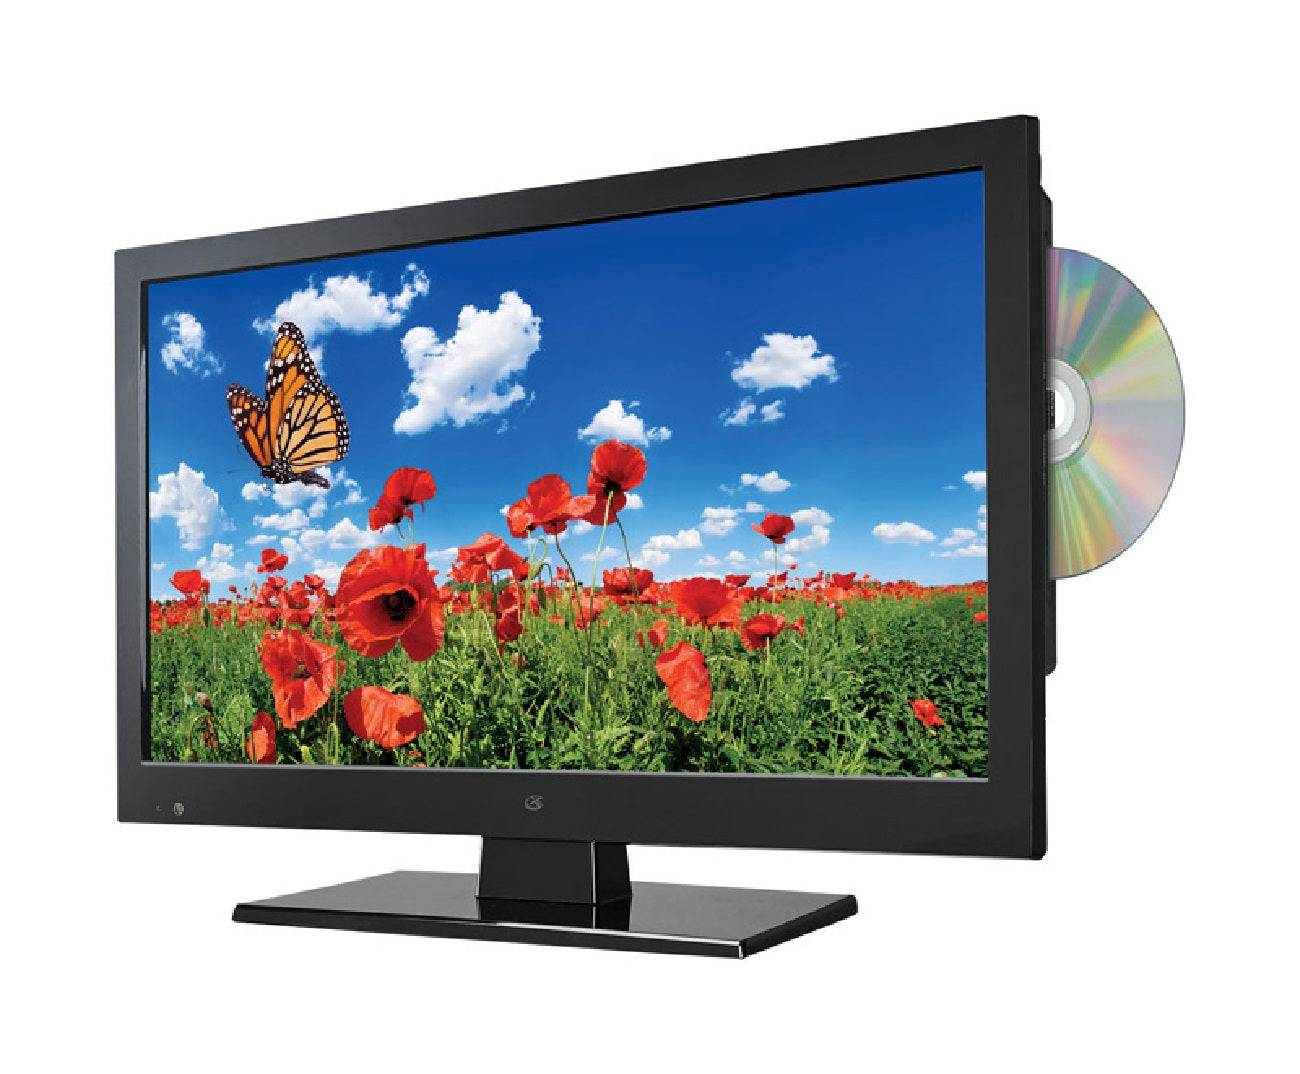 Gpx Tde1587b Led Color Tv And Dvd Combo, 720p, 15""